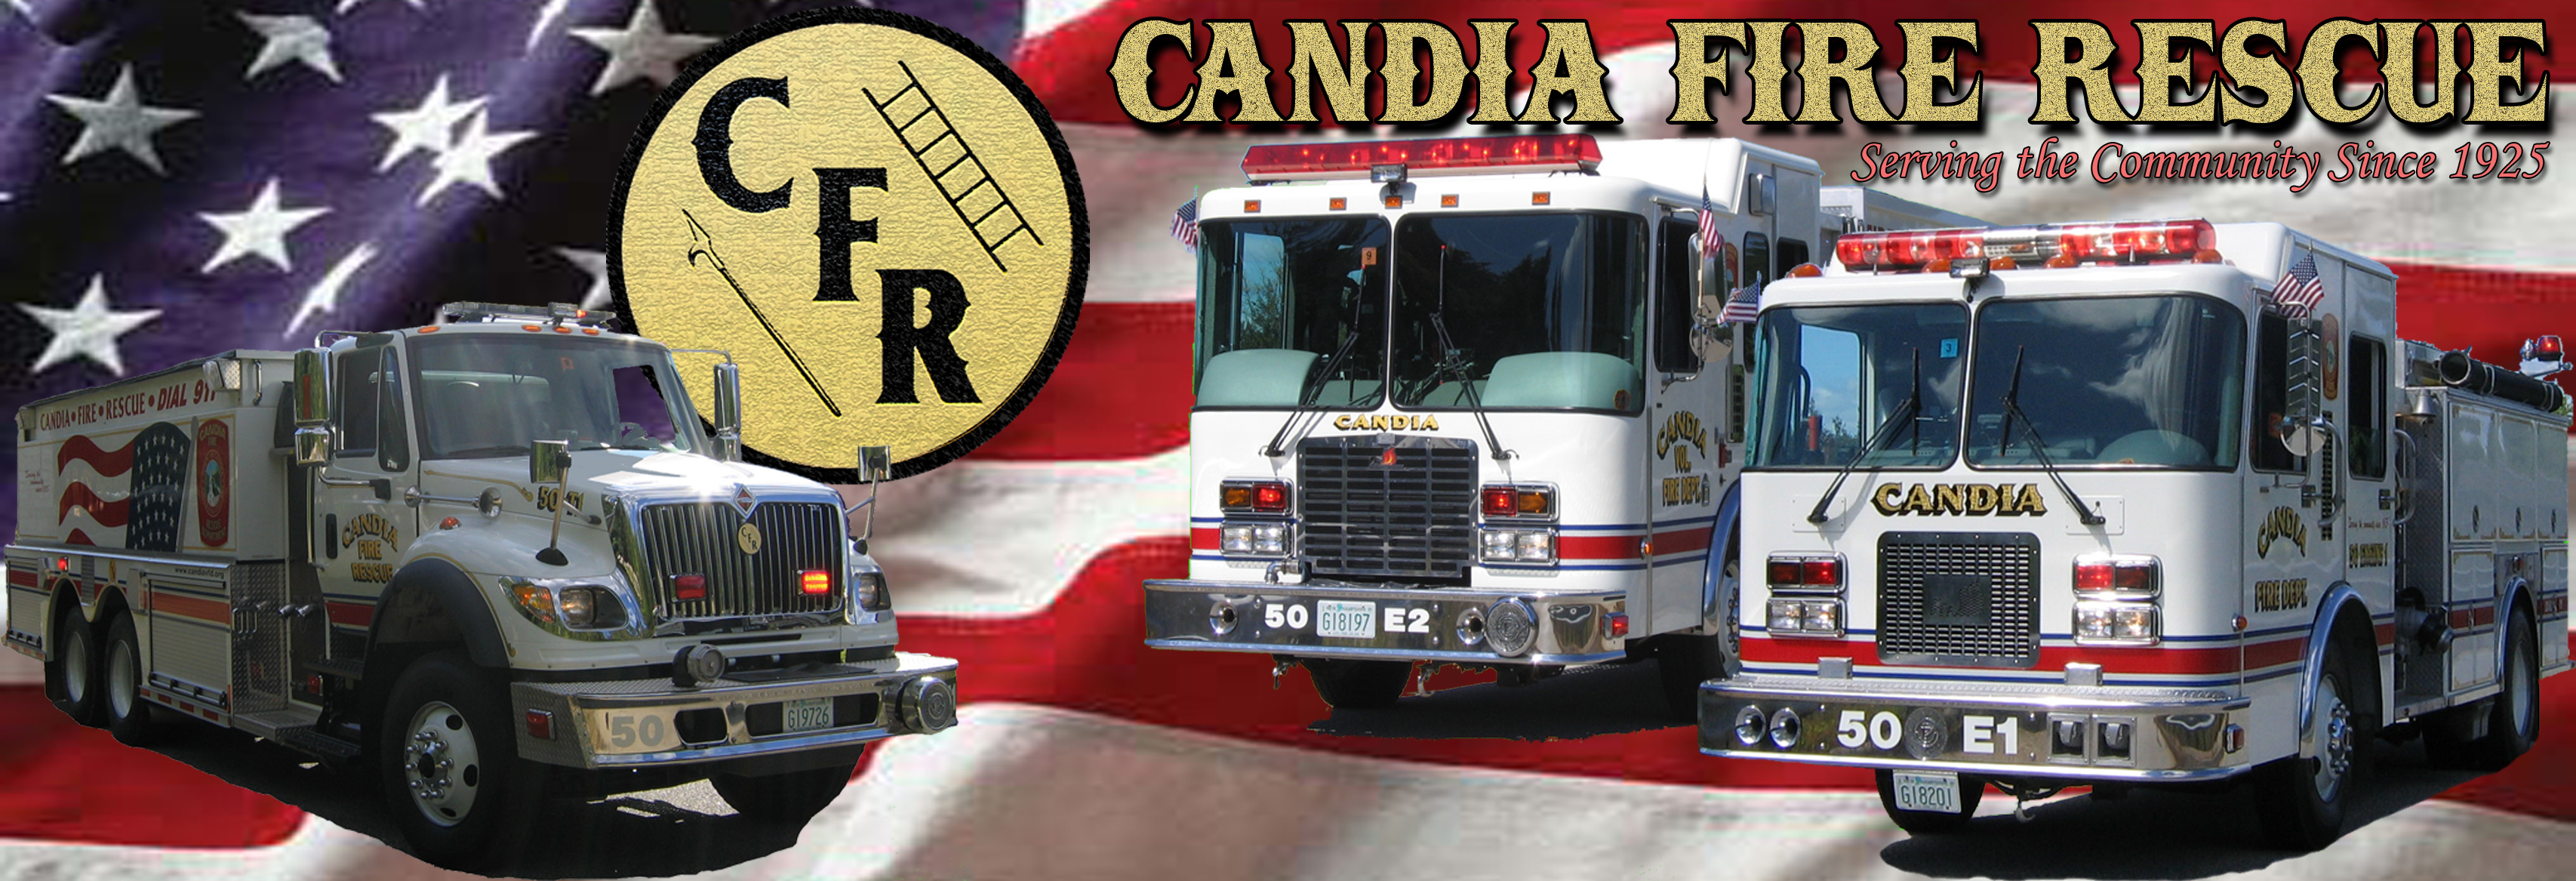 Candia Fire Department